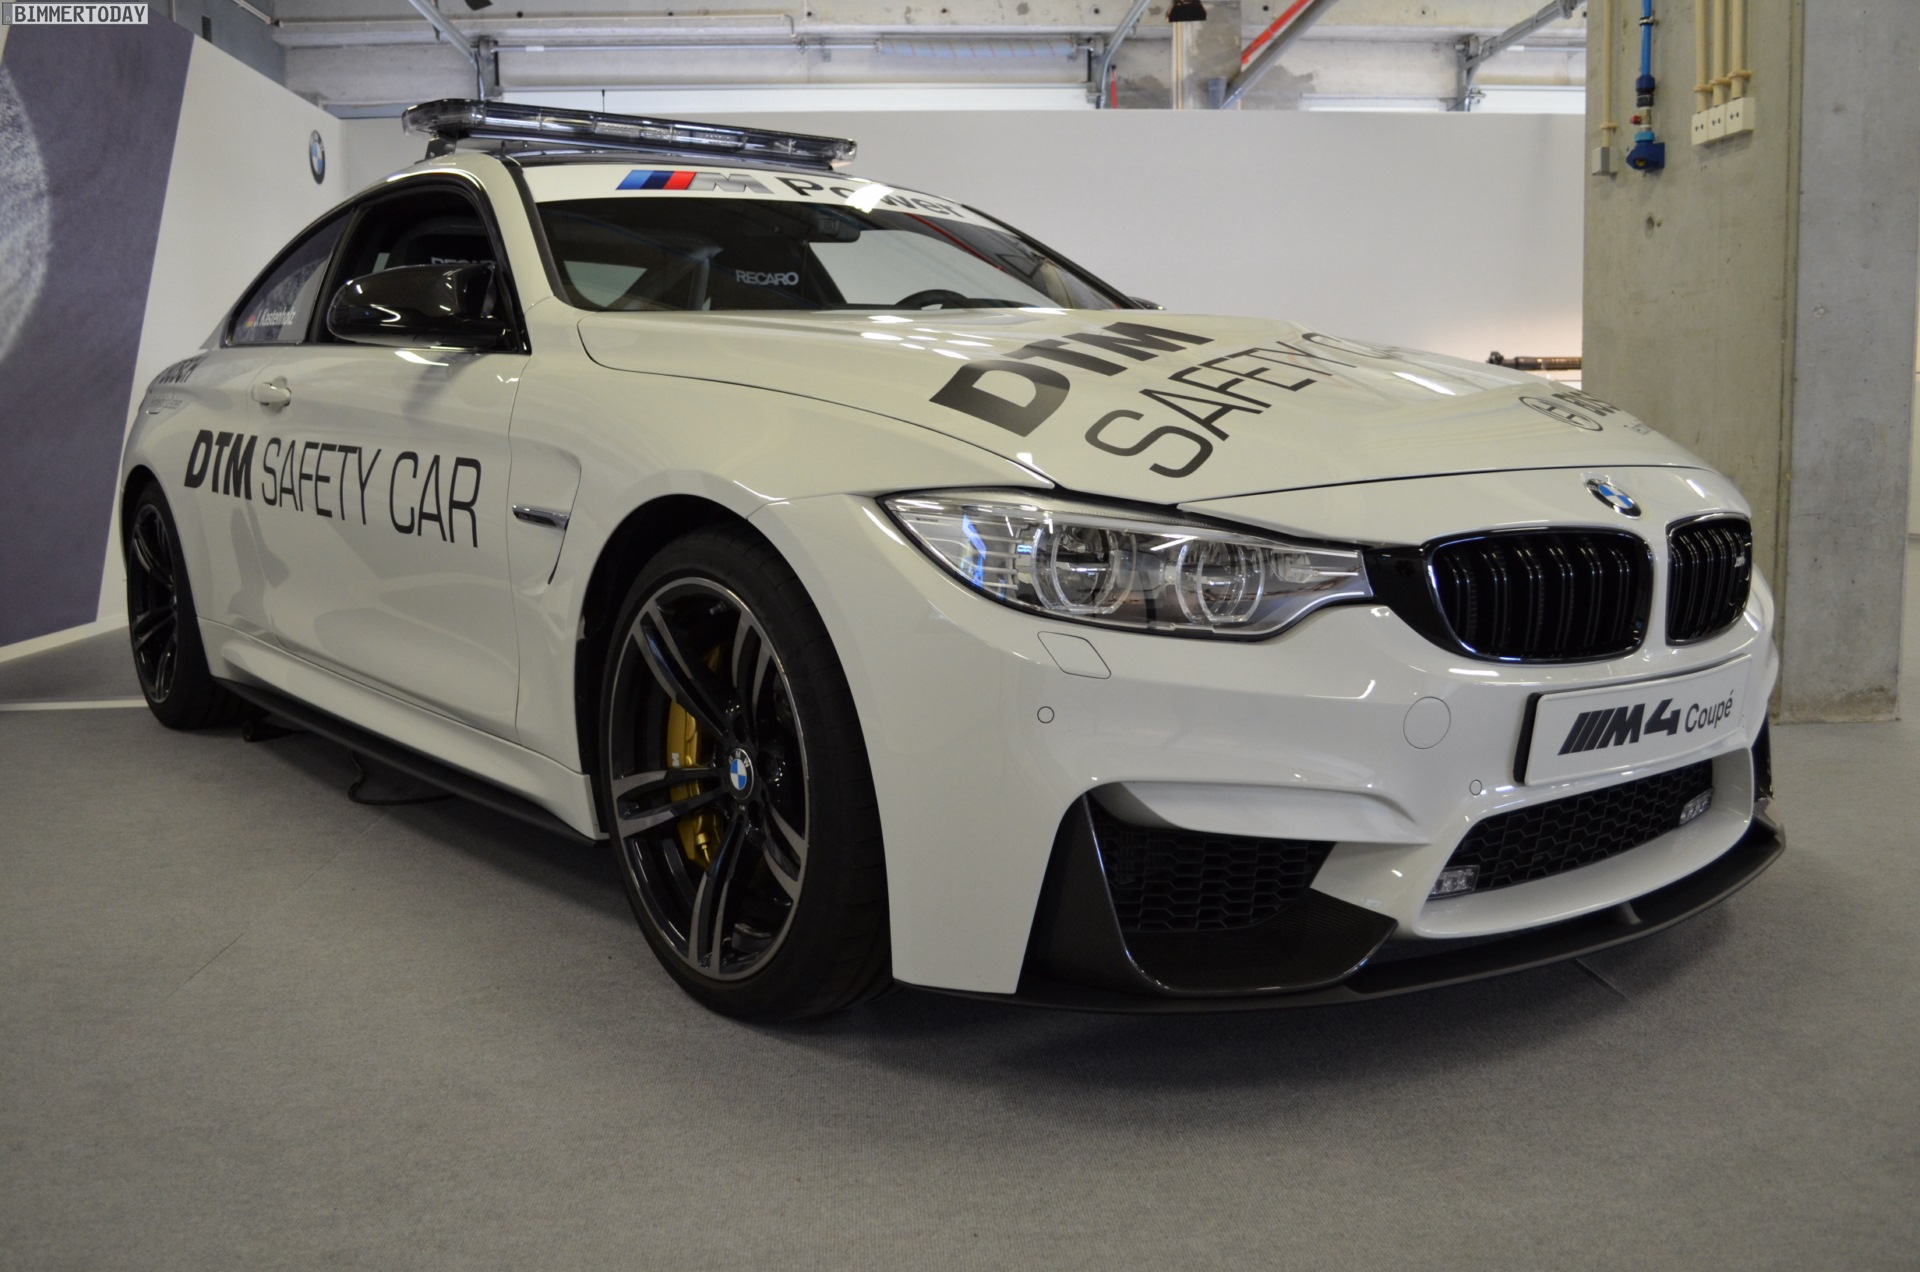 A Closer Look At The Bmw M4 Dtm Safety Car